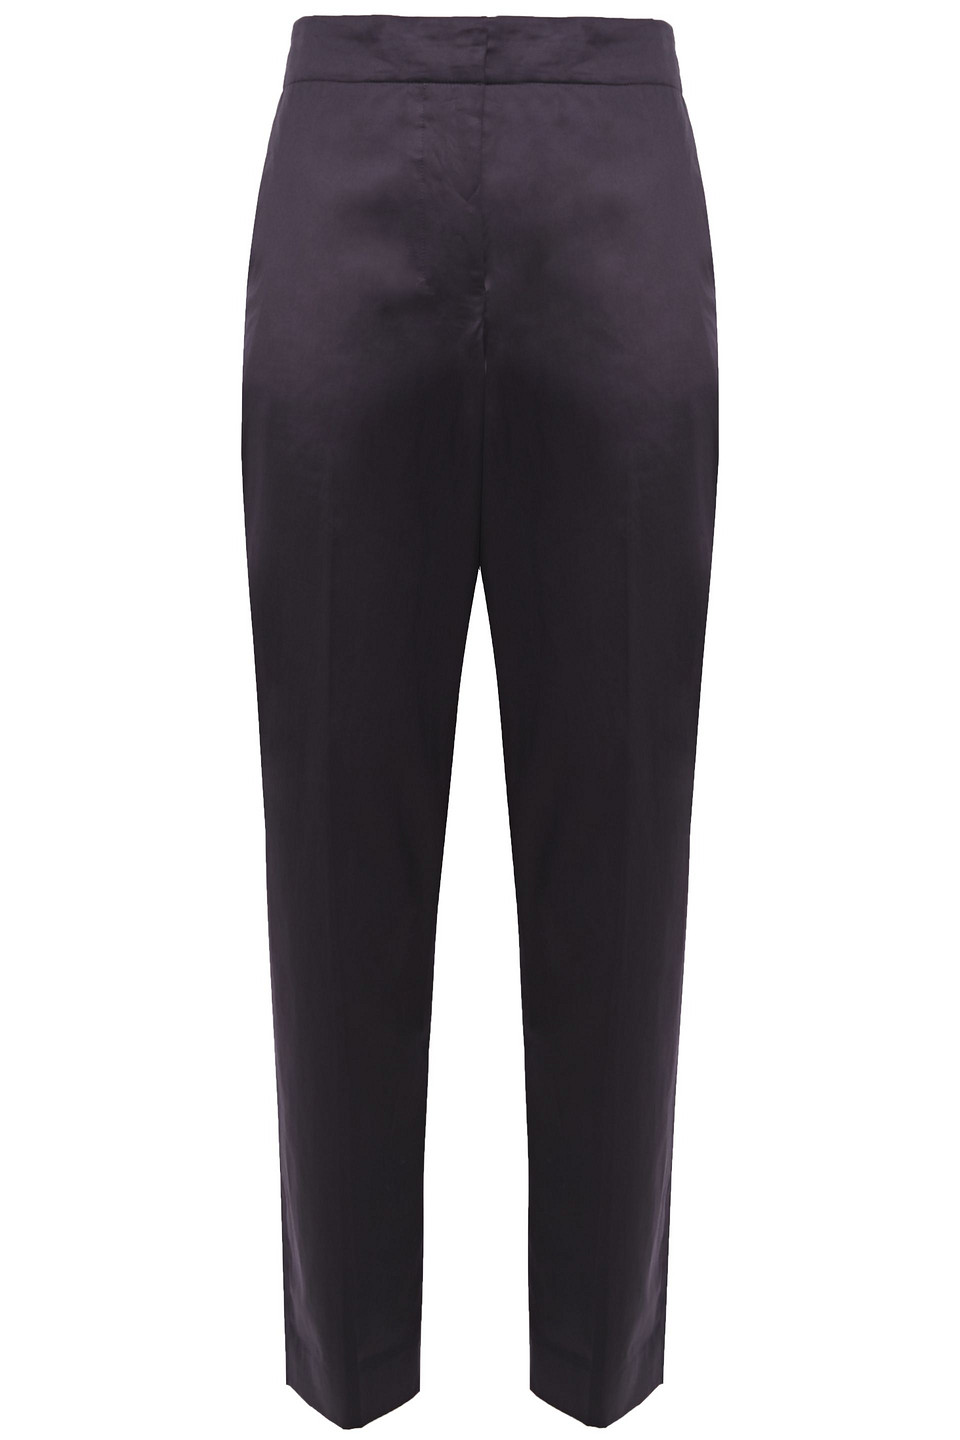 Theory | Theory Woman Cotton Tapered Pants Midnight Blue | Clouty